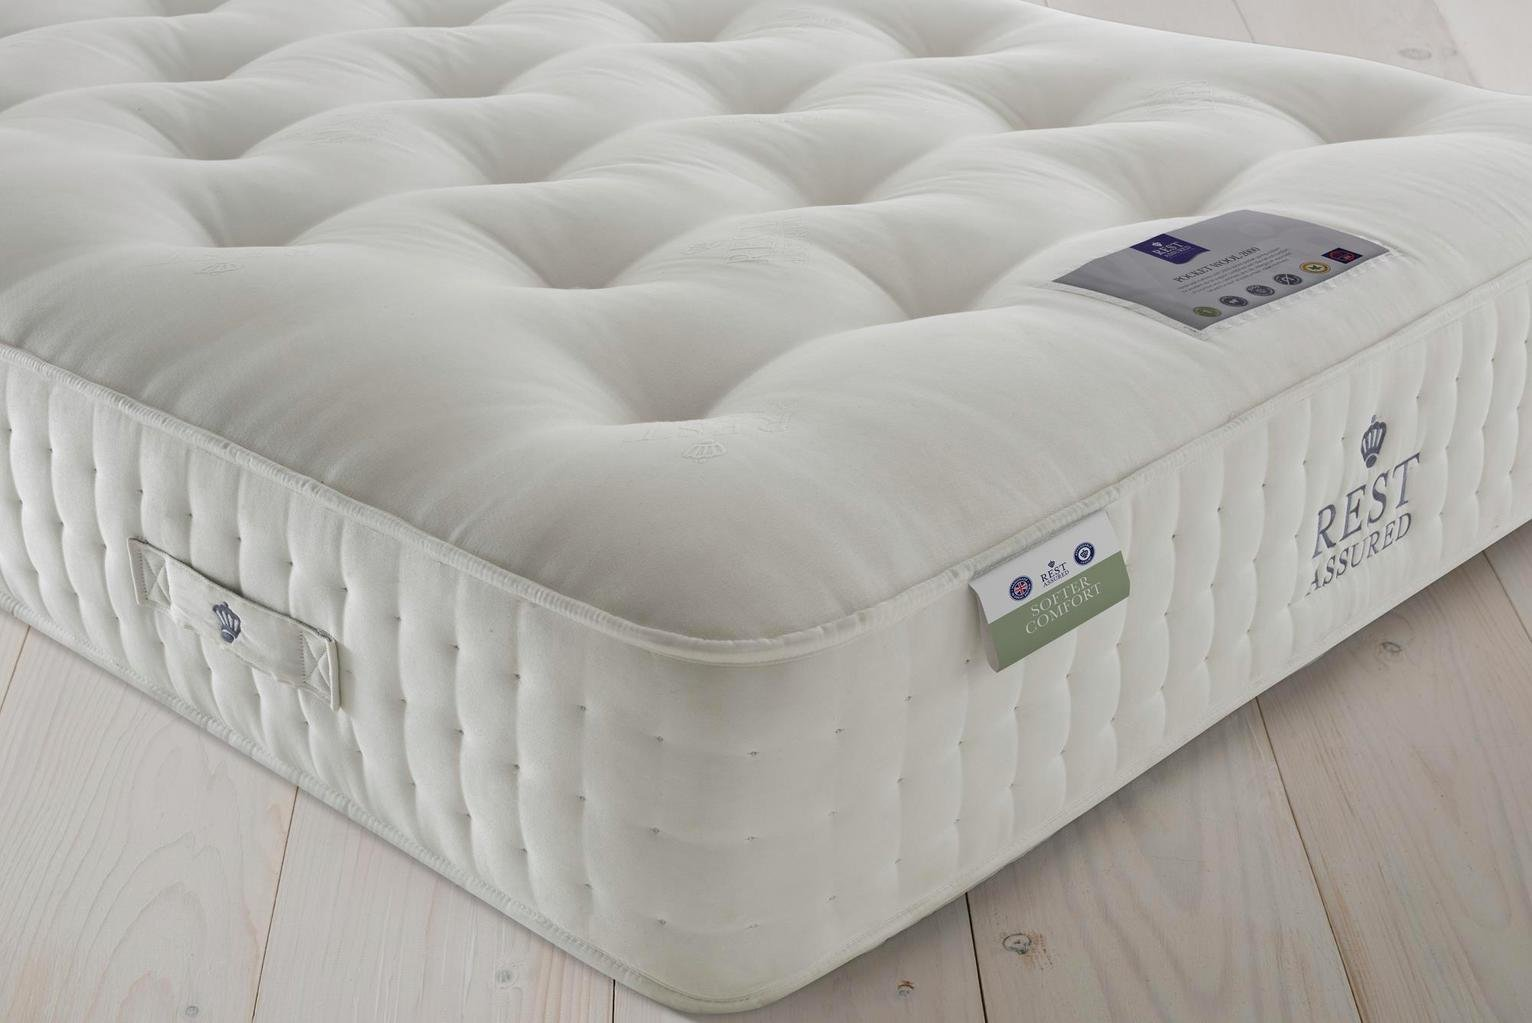 Rest Assured Naturals Pkt Sprung Kingsize Mattress - Softer